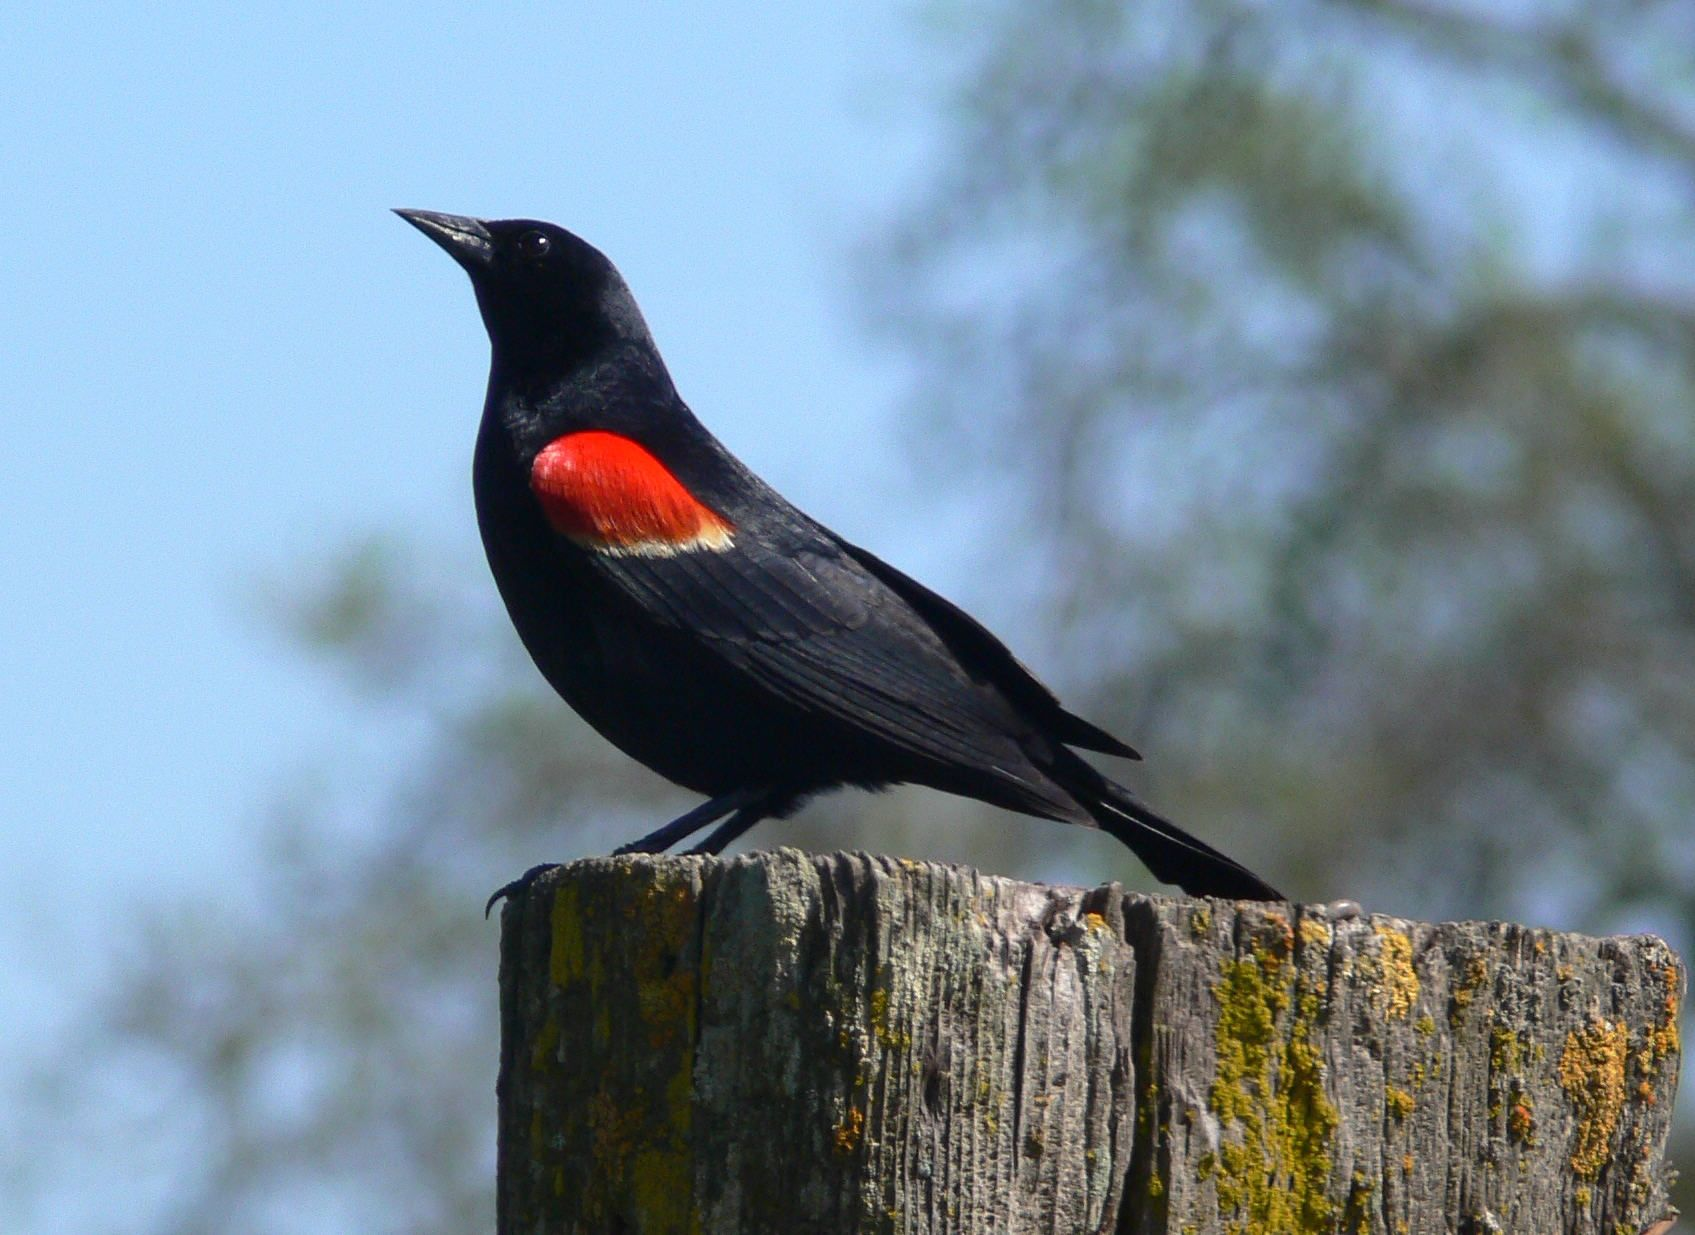 Agelaius phoeniceus - Red-winged Blackbird -- Seen since childhood, first recorded sighting: 7/18/2012 Ithaca, NY